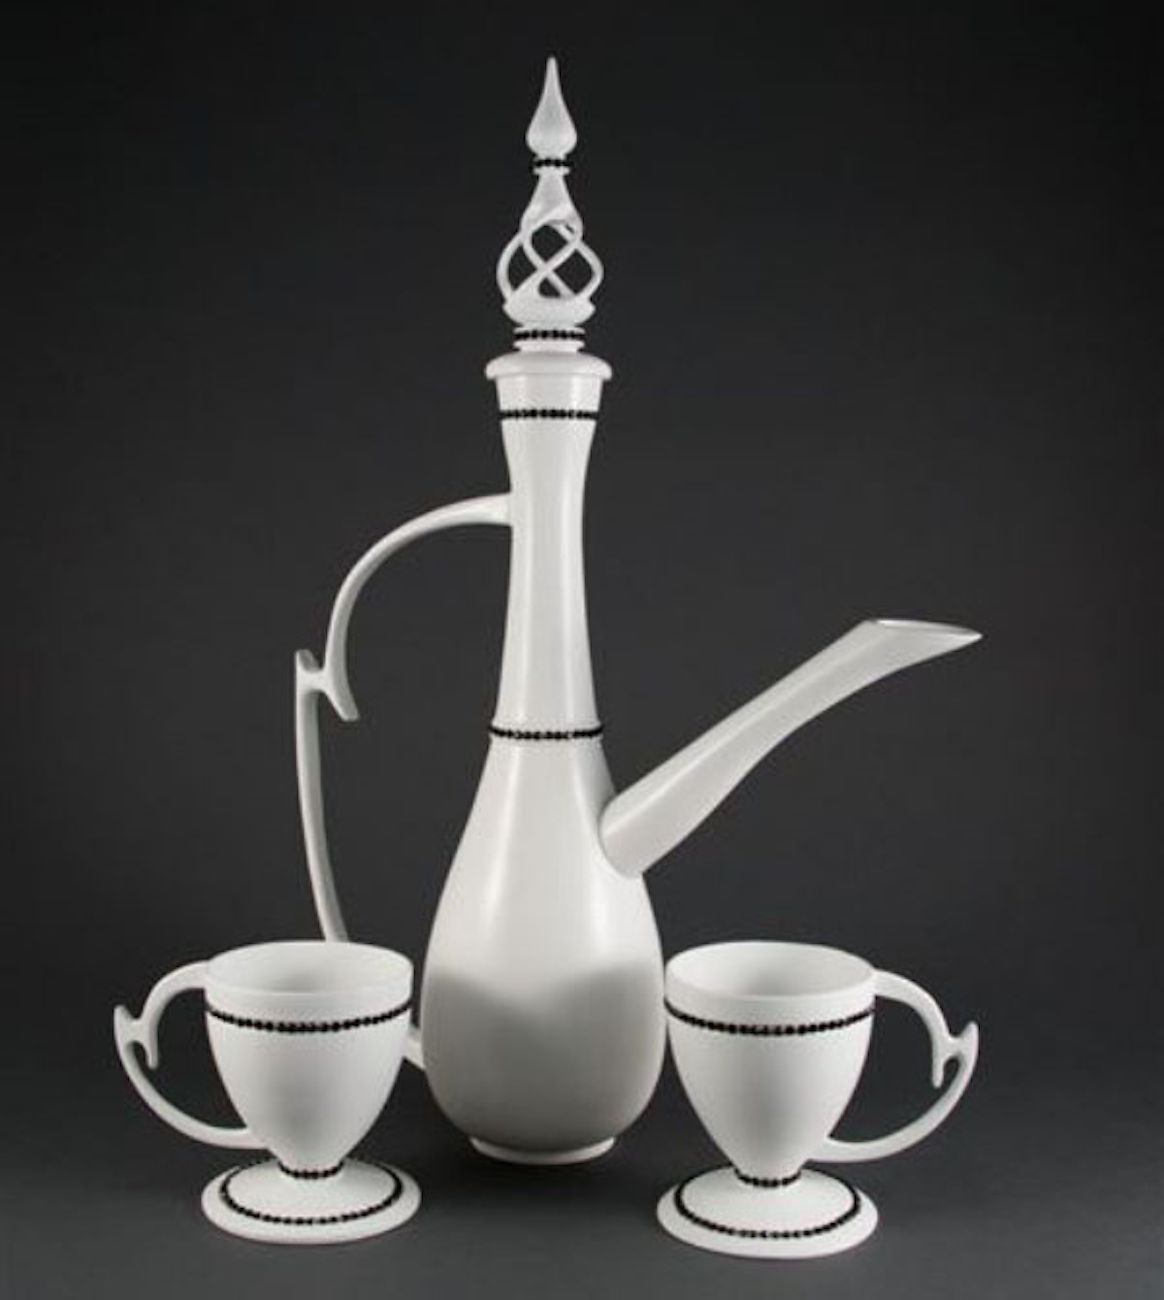 <p>This tea set{&amp;nbsp;}by Nancy Bowman was hollowed on a lathe and then the handles and teapot lid were carved. The set was then lacquered soft white and trimmed in black Swarovski Crystals. / Image: Nancy Bowman{&amp;nbsp;}// Published: 4.18.19</p>